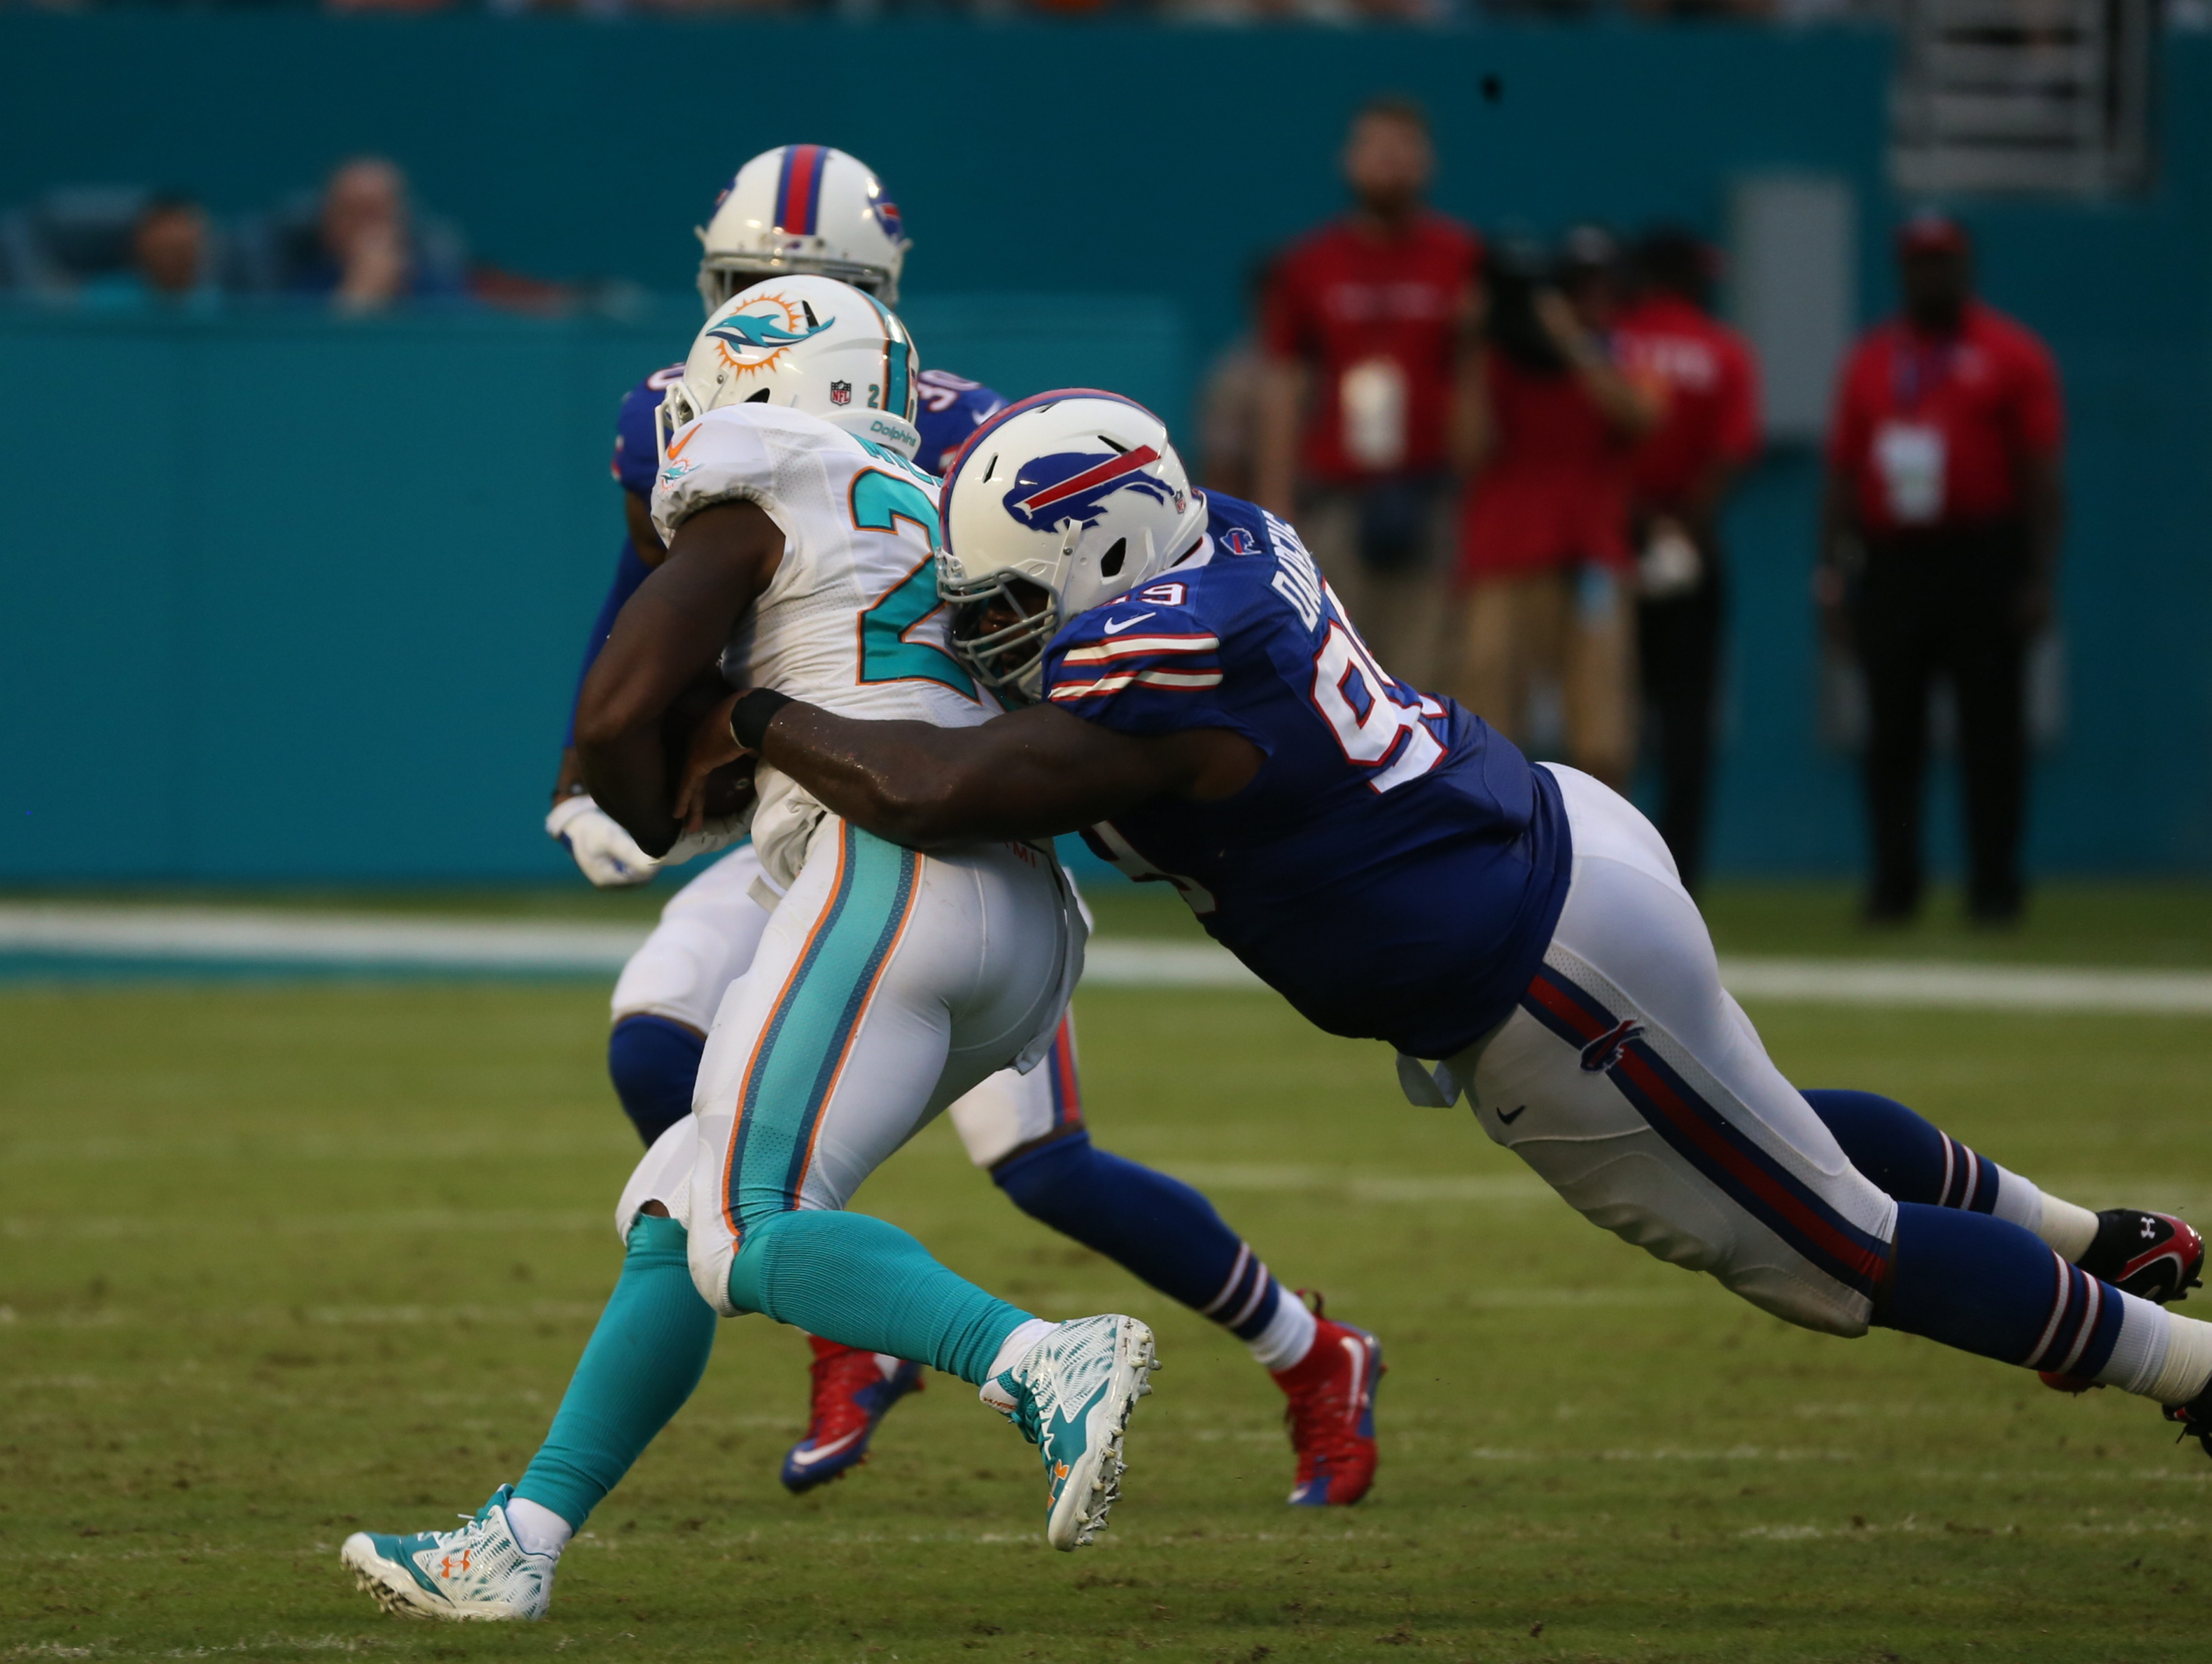 Miami Dolphins running back Lamar Miller (26) is tackled by Buffalo Bills defensive tackle Marcell Dareus (99) during the third quarter on Sept. 27, 2015. (James P. McCoy/ Buffalo News)